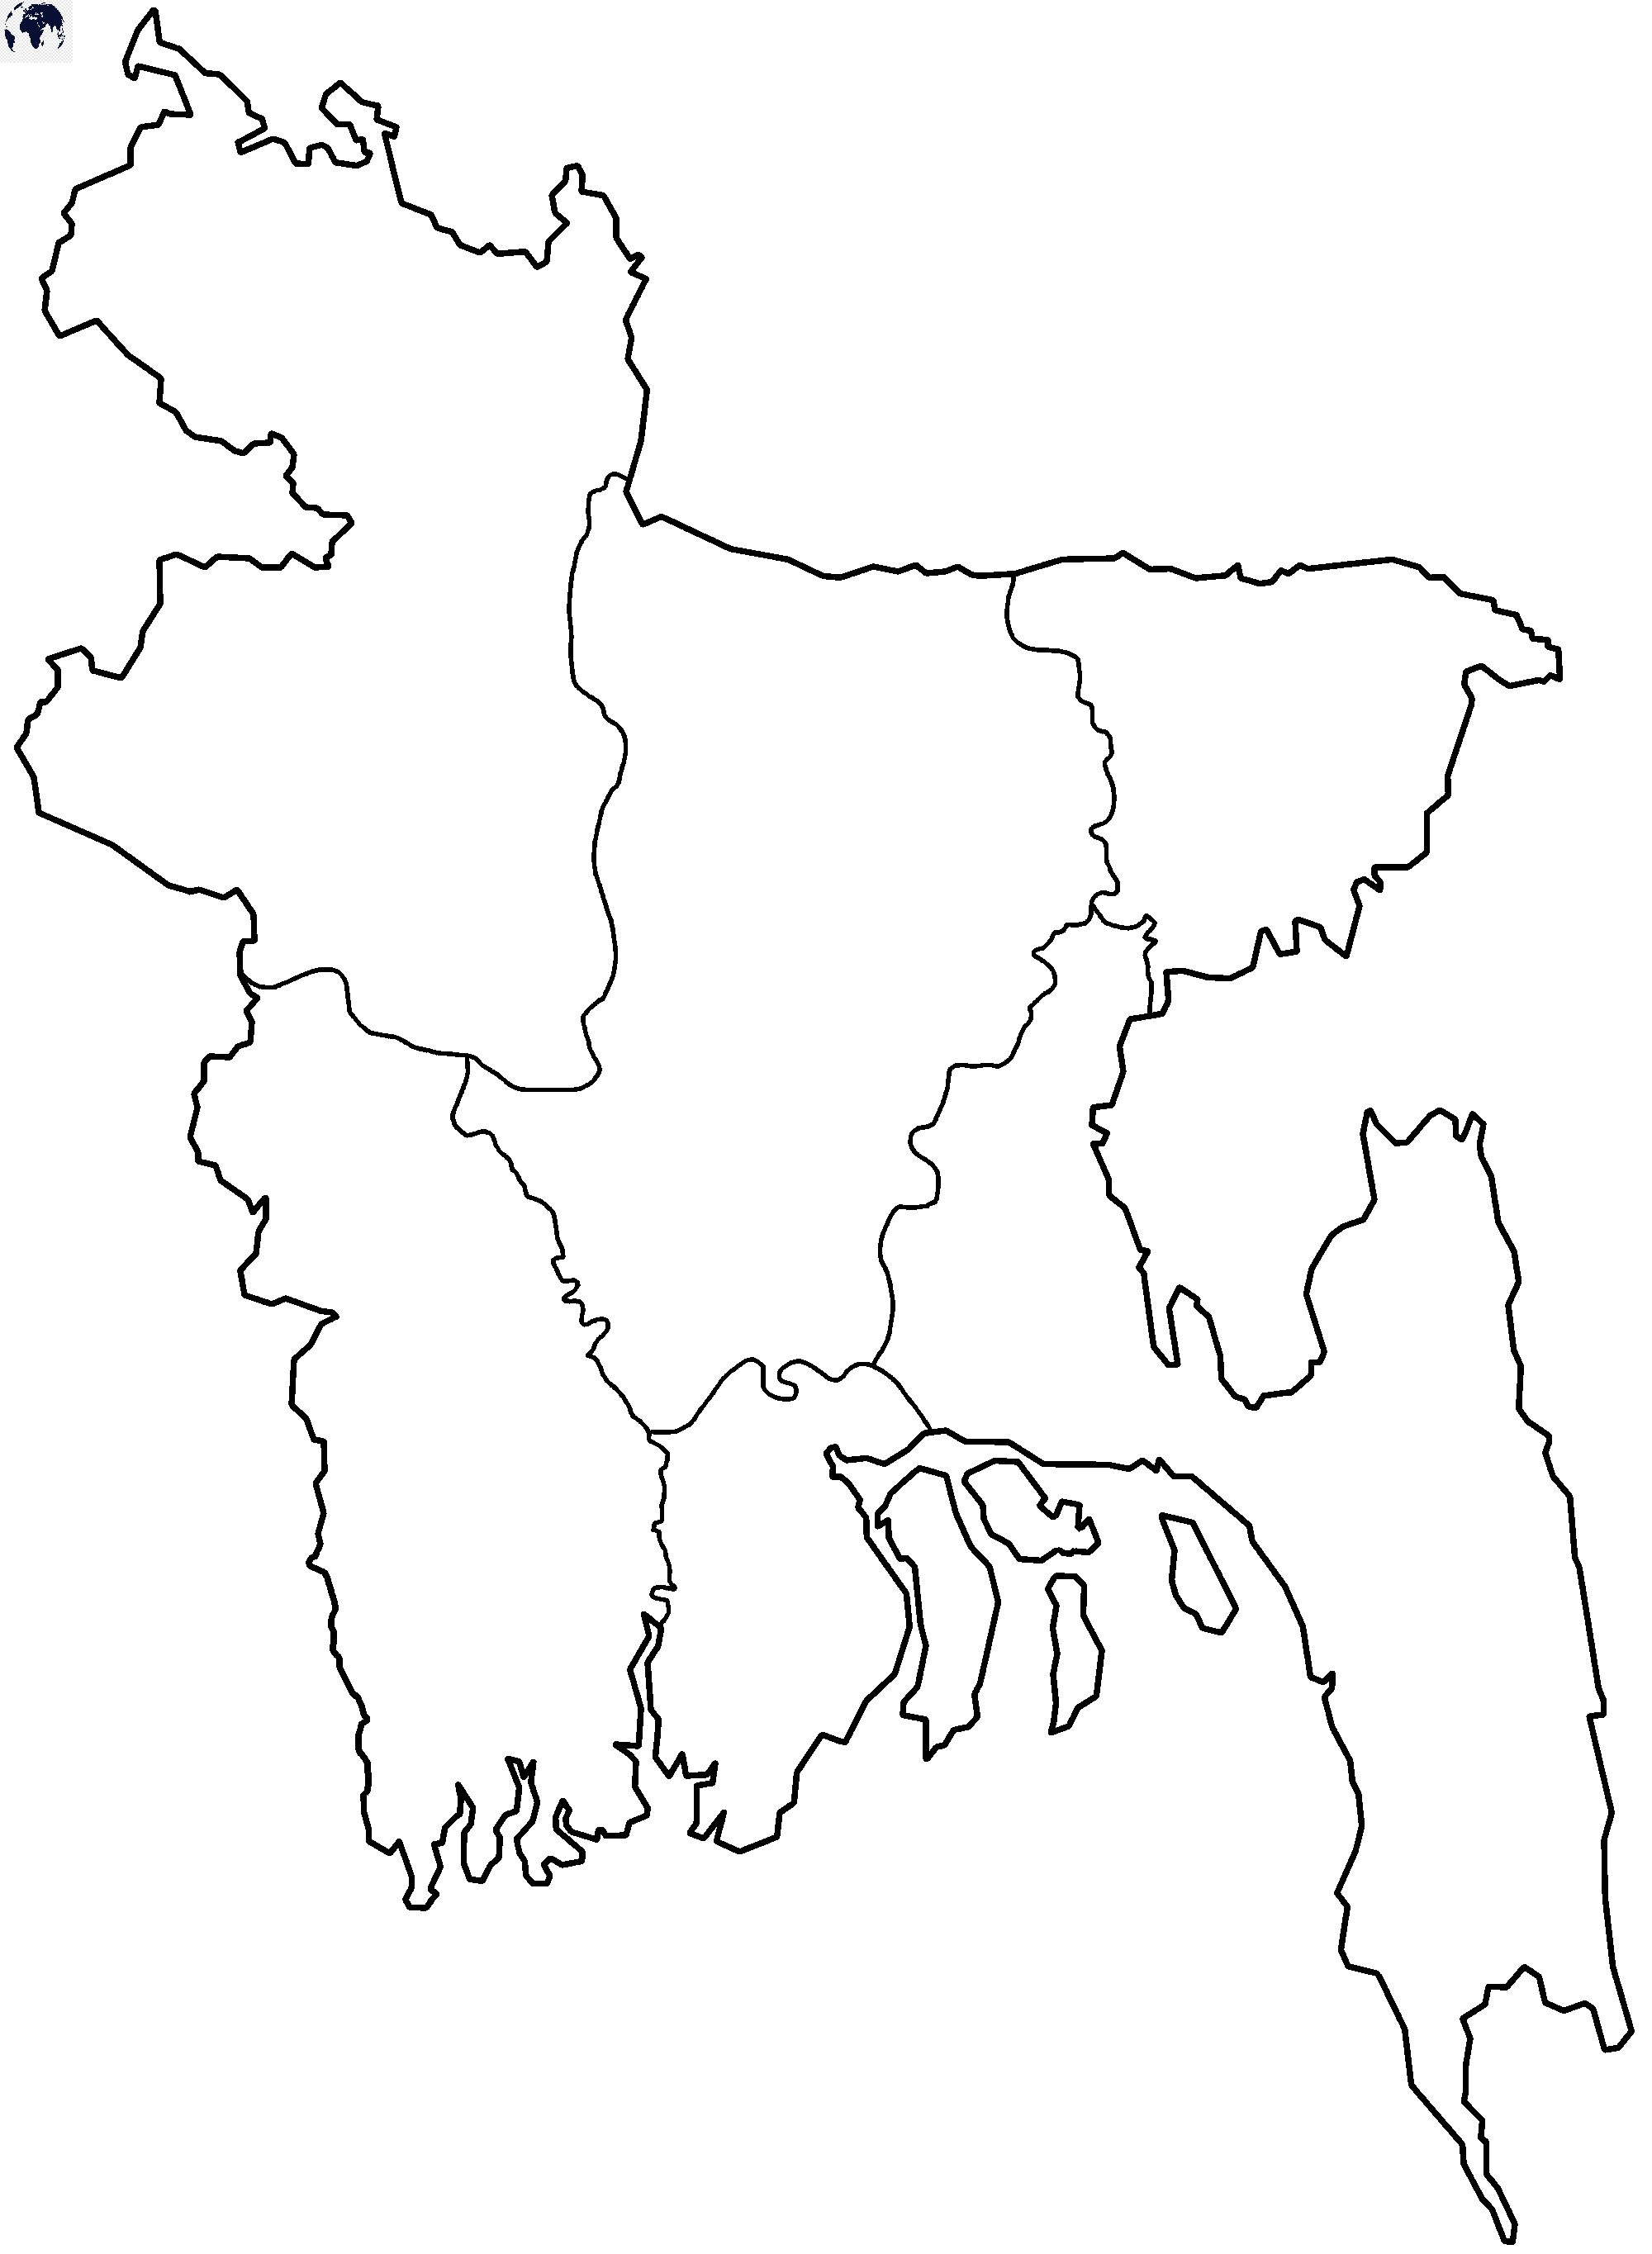 Map of Bangladesh for Practice Worksheet